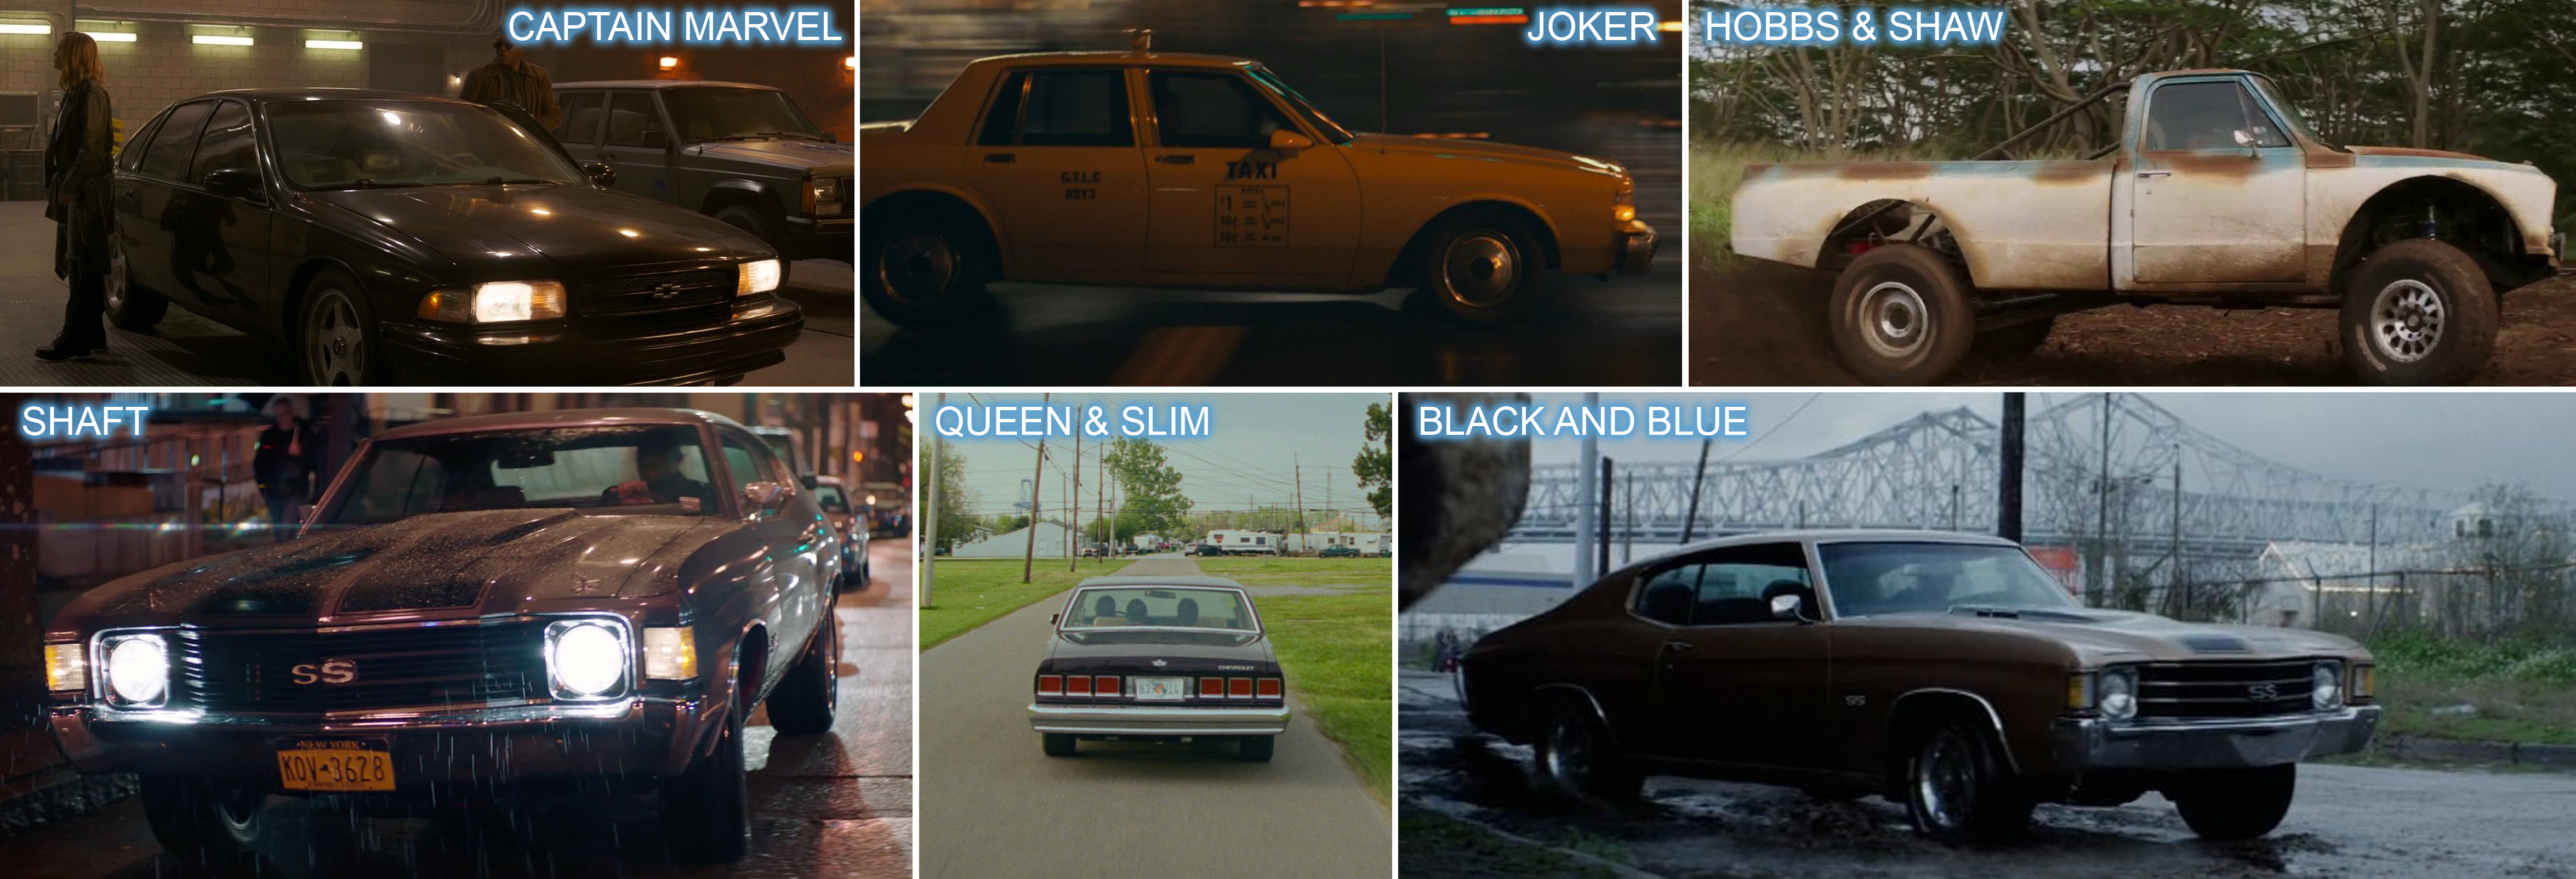 Chevrolet product placement in 2019 films